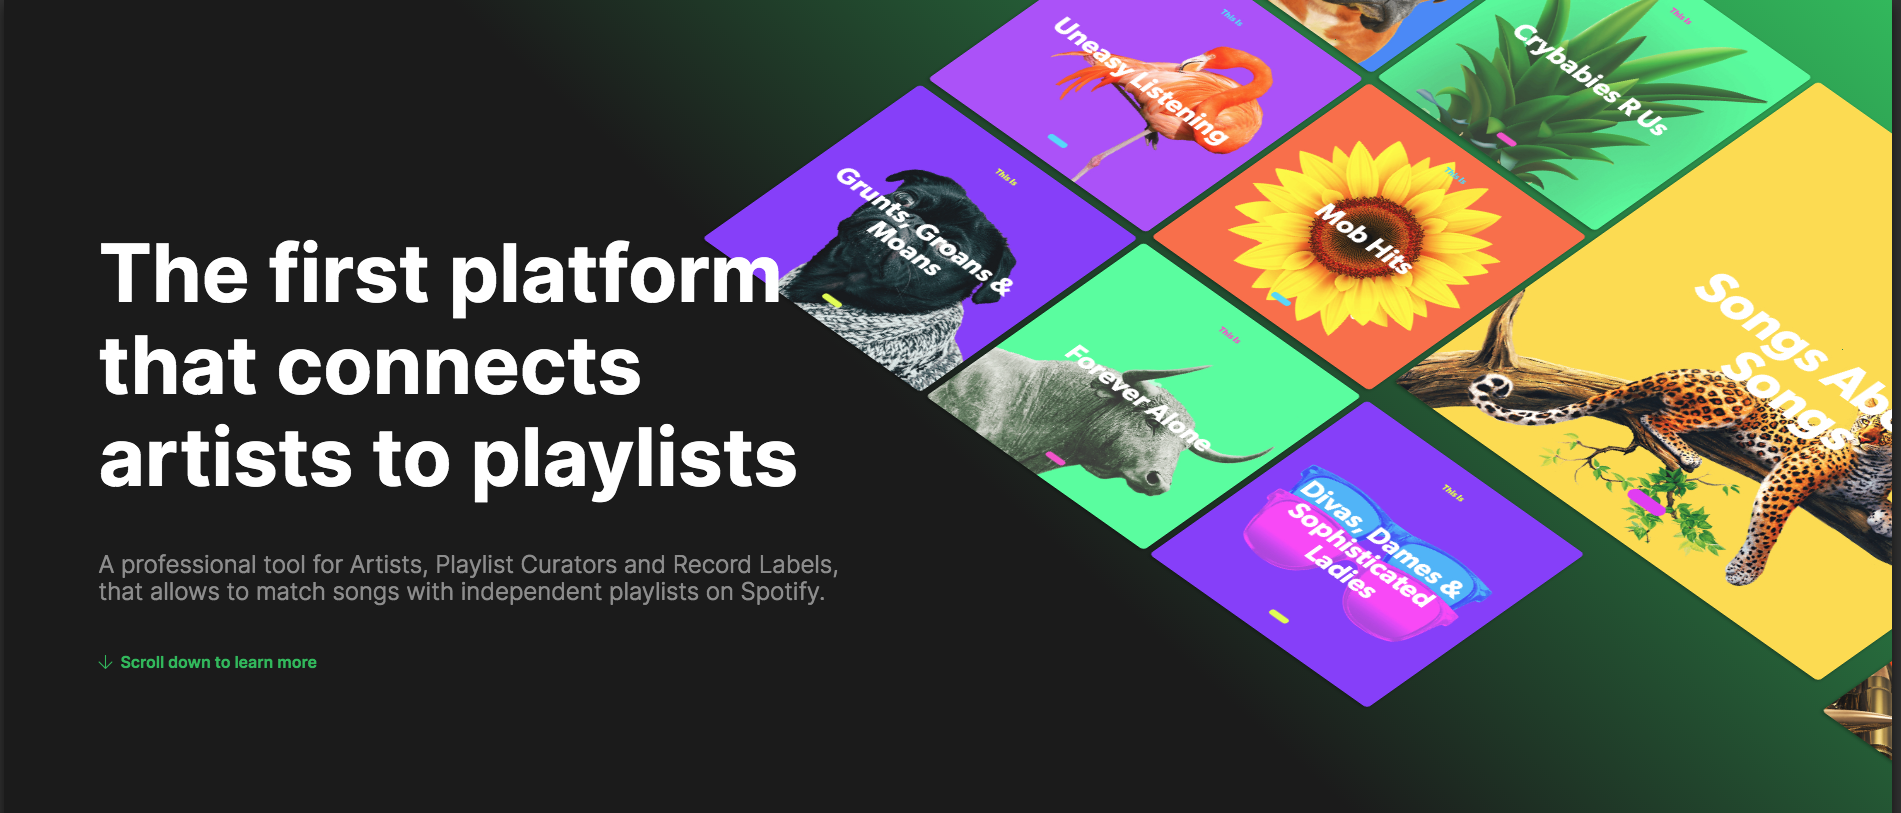 SpotiMatch Wants To Connect Artists To The Right Spotify Playlists